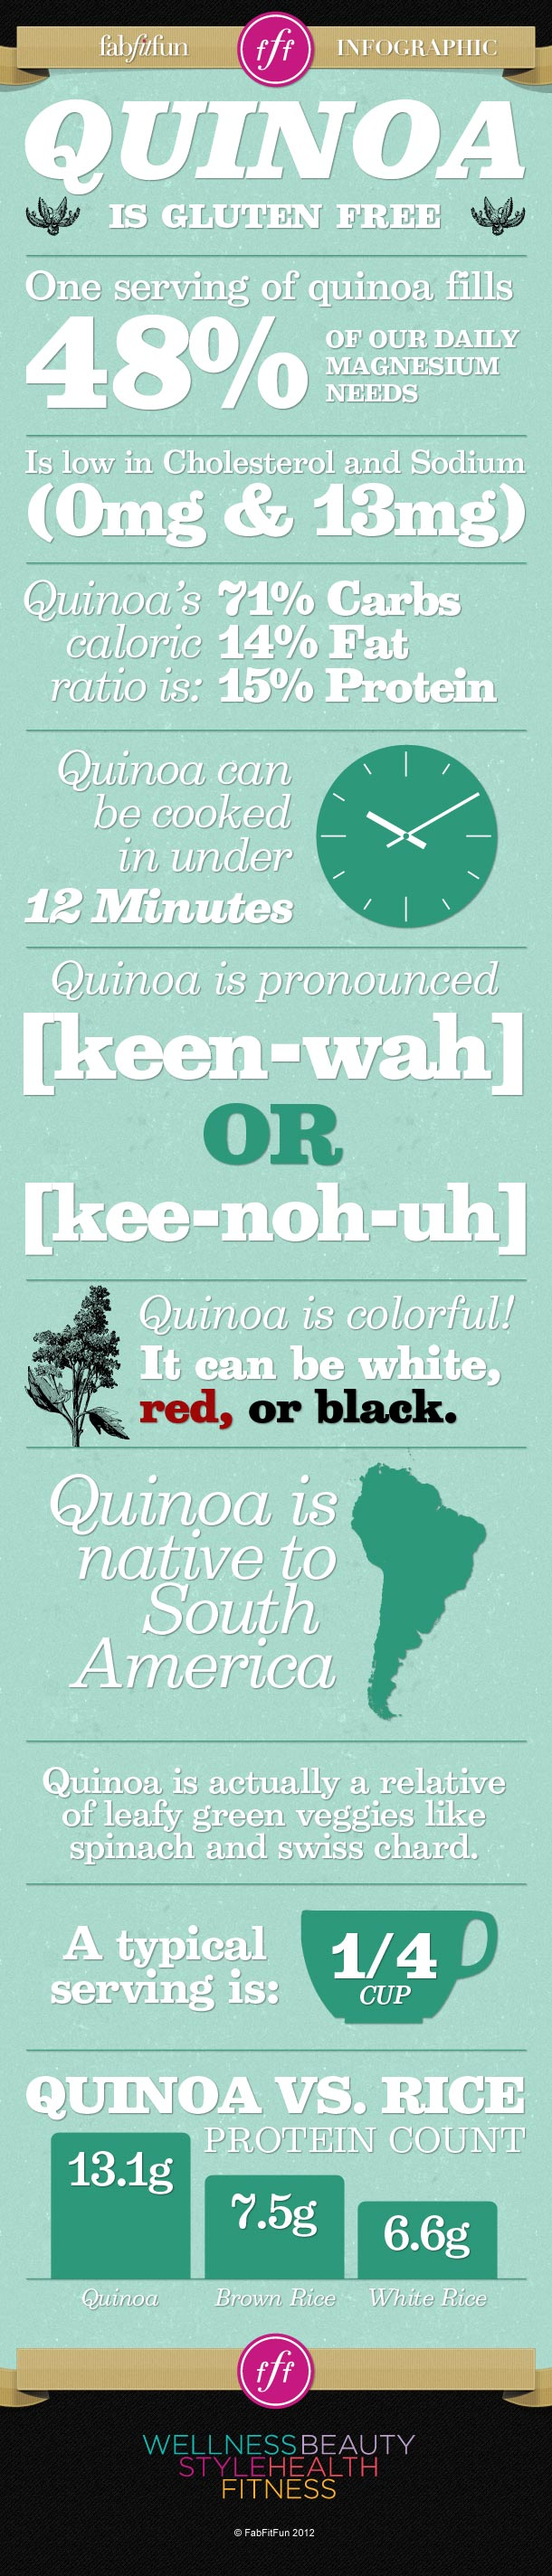 quinoa-infographic-large-green